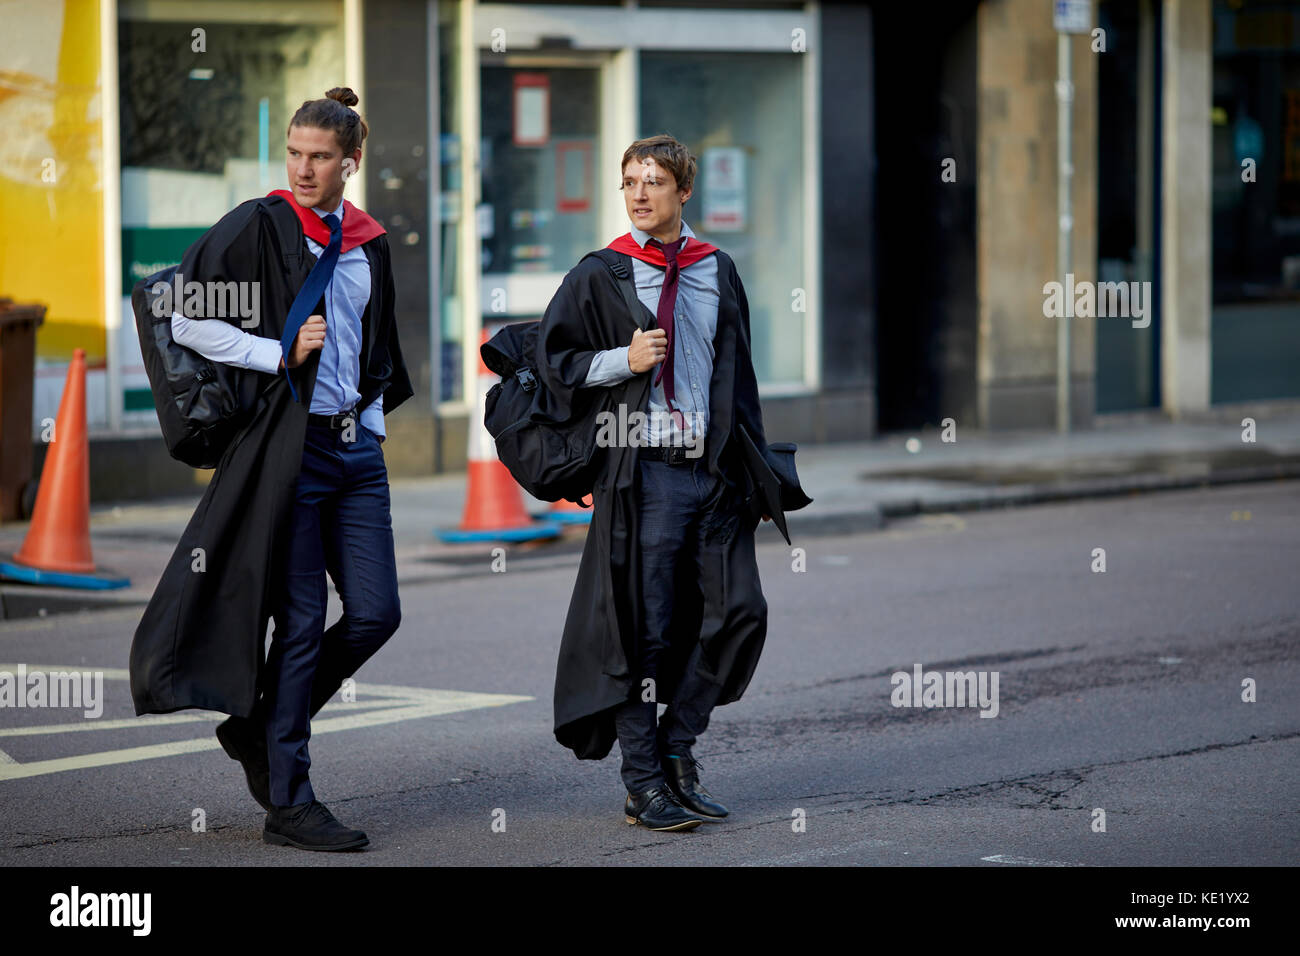 University gowns - Stock Image